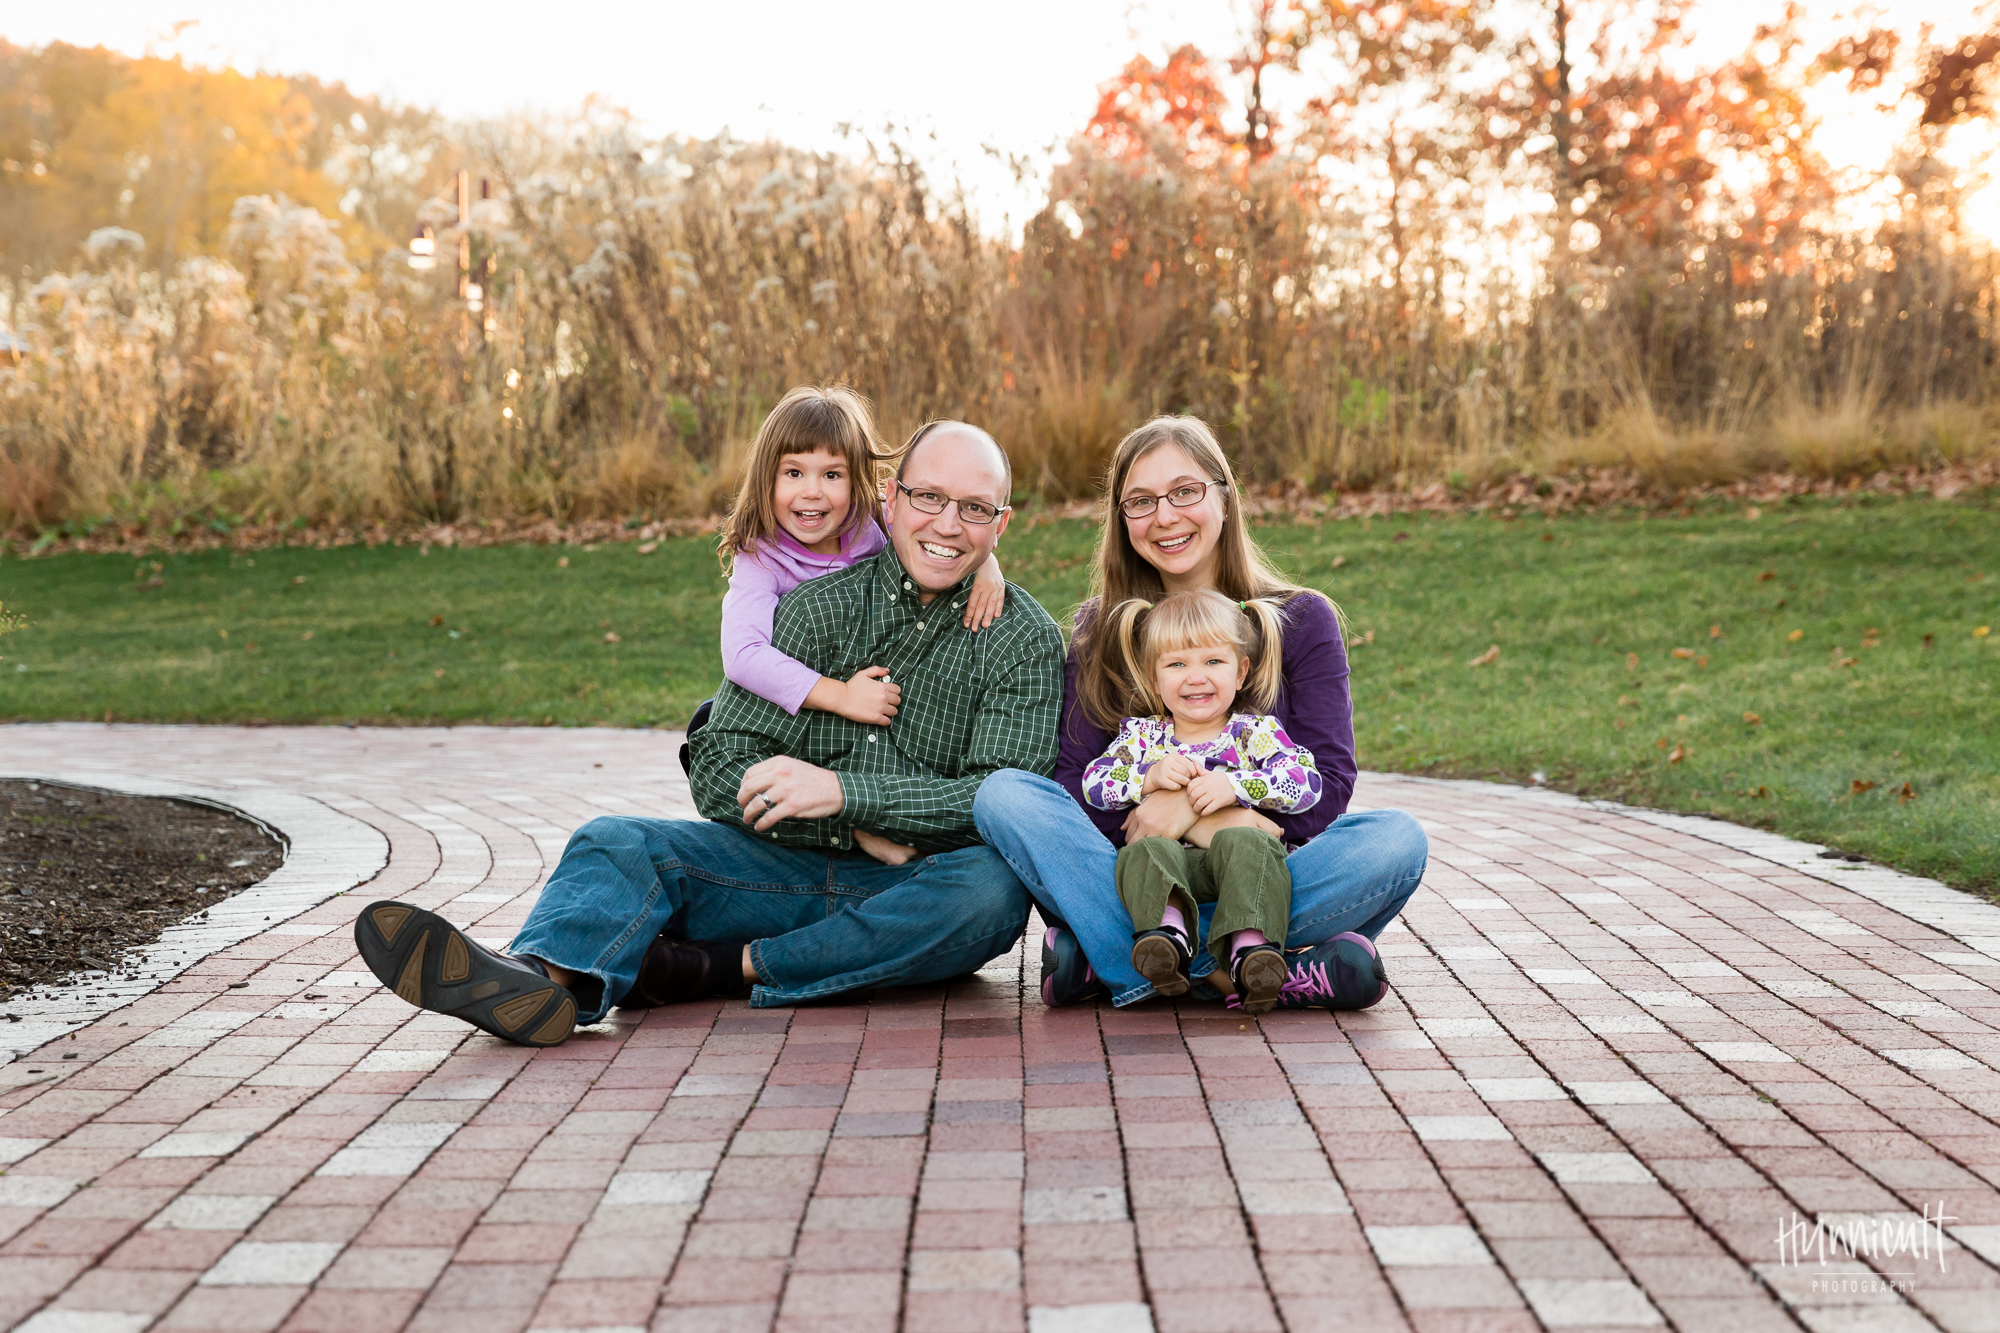 Outdoor-Park-Family-Hunnicutt-Photography-Rebecca-Hunnicutt-Farren-USA-4